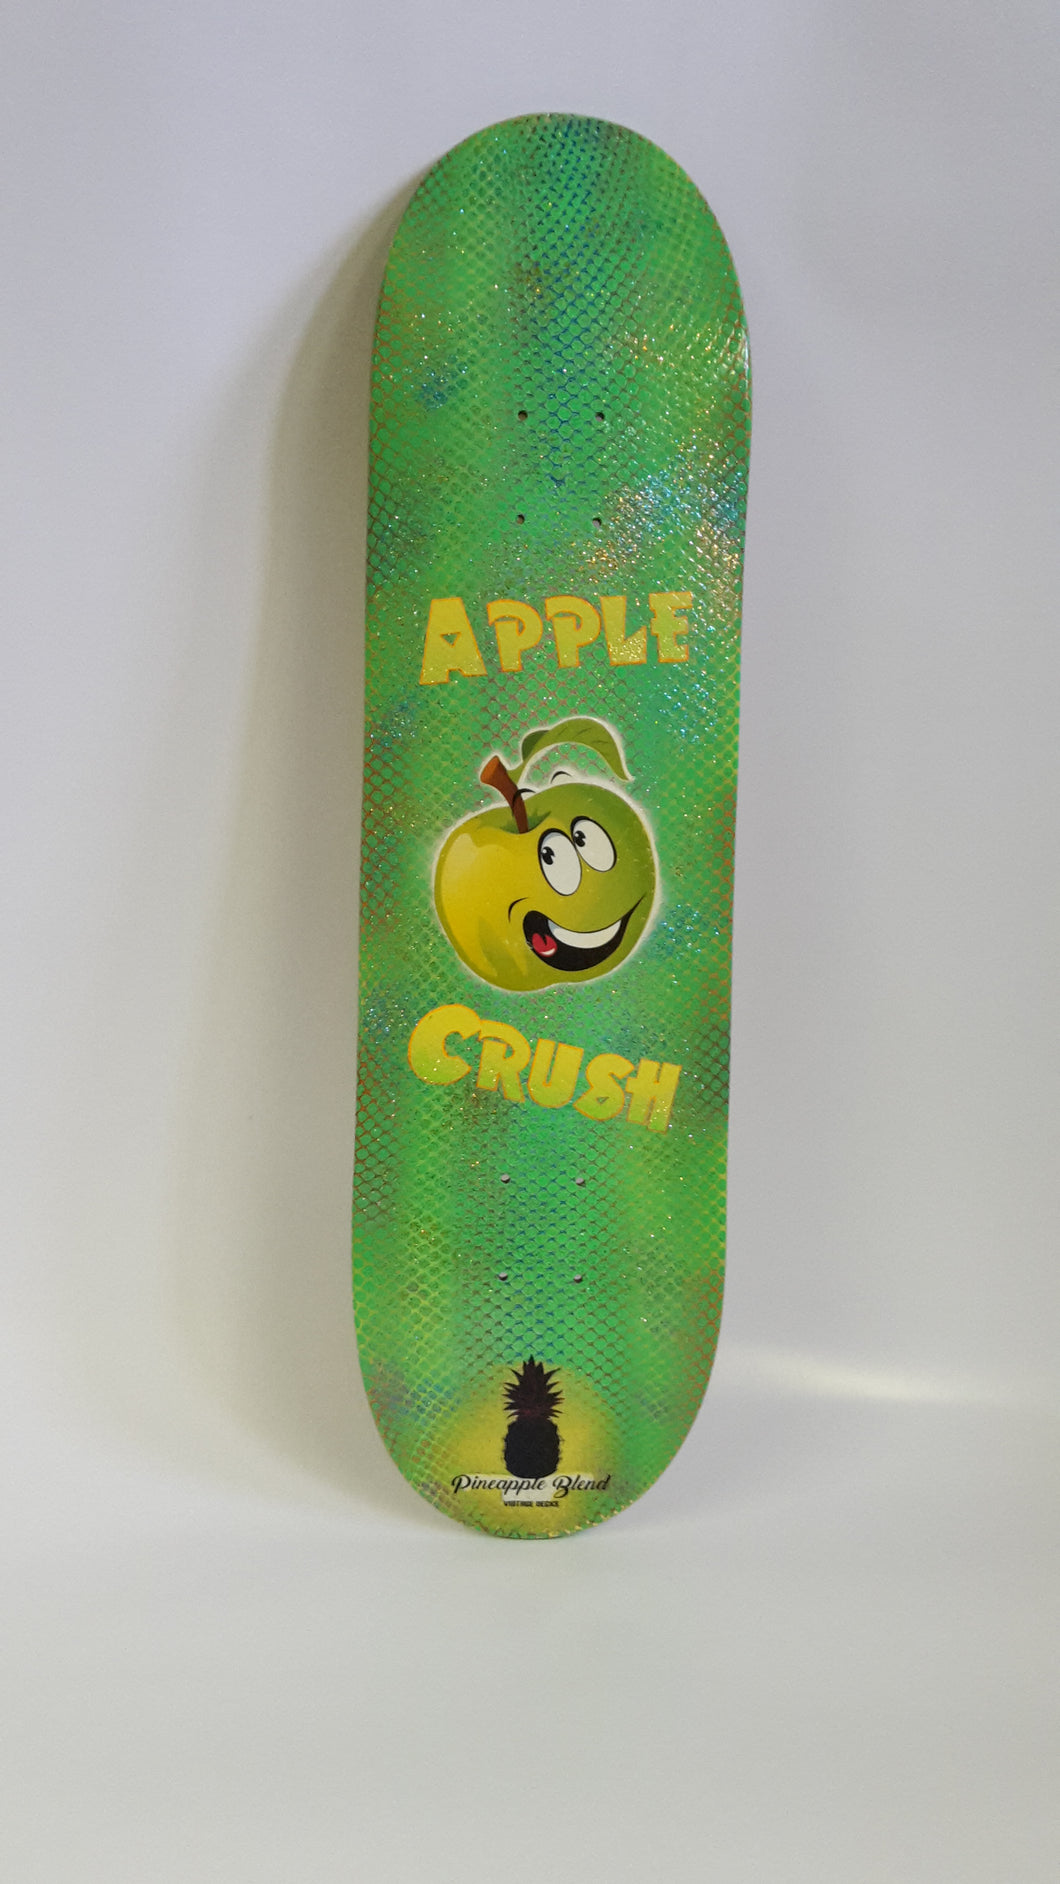 Apple Crush Hand-Painted Deck